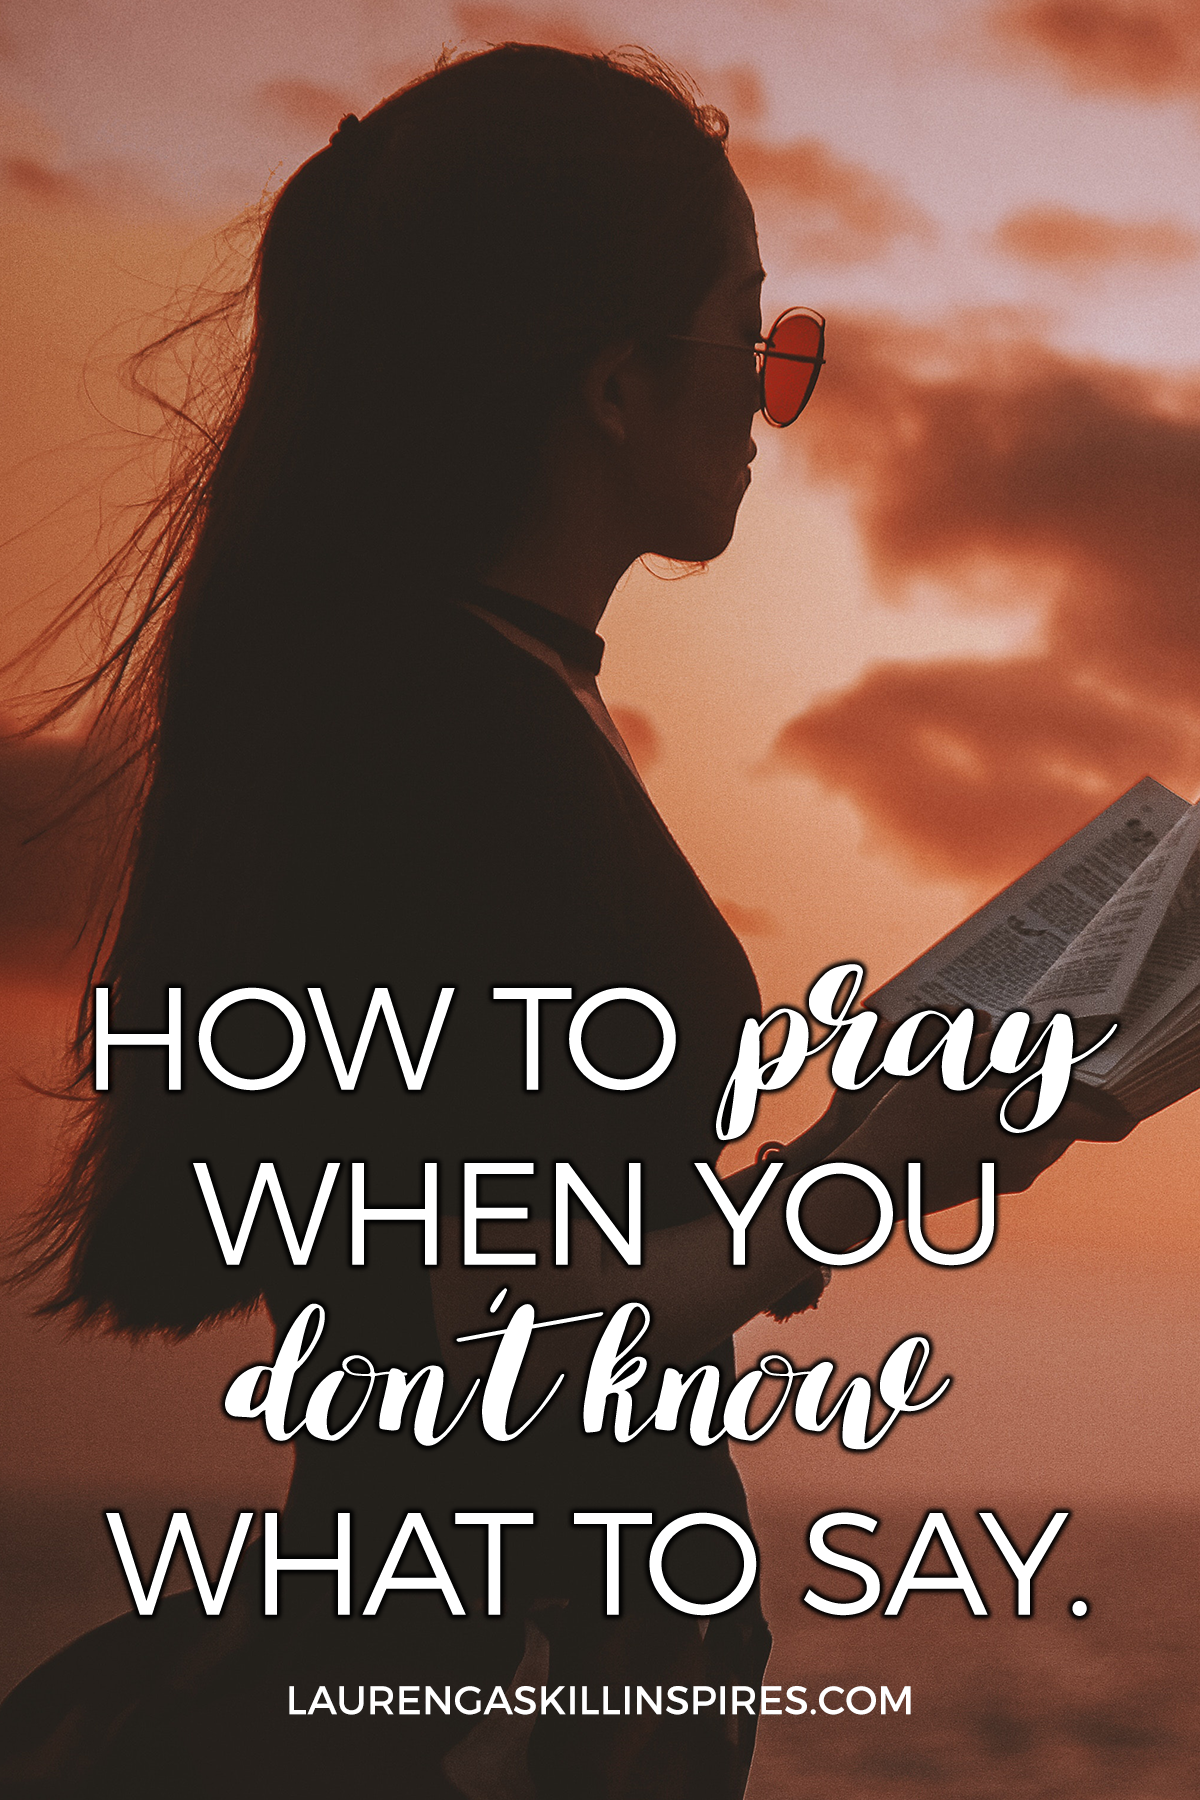 How to Pray When We Don't Know What to Say